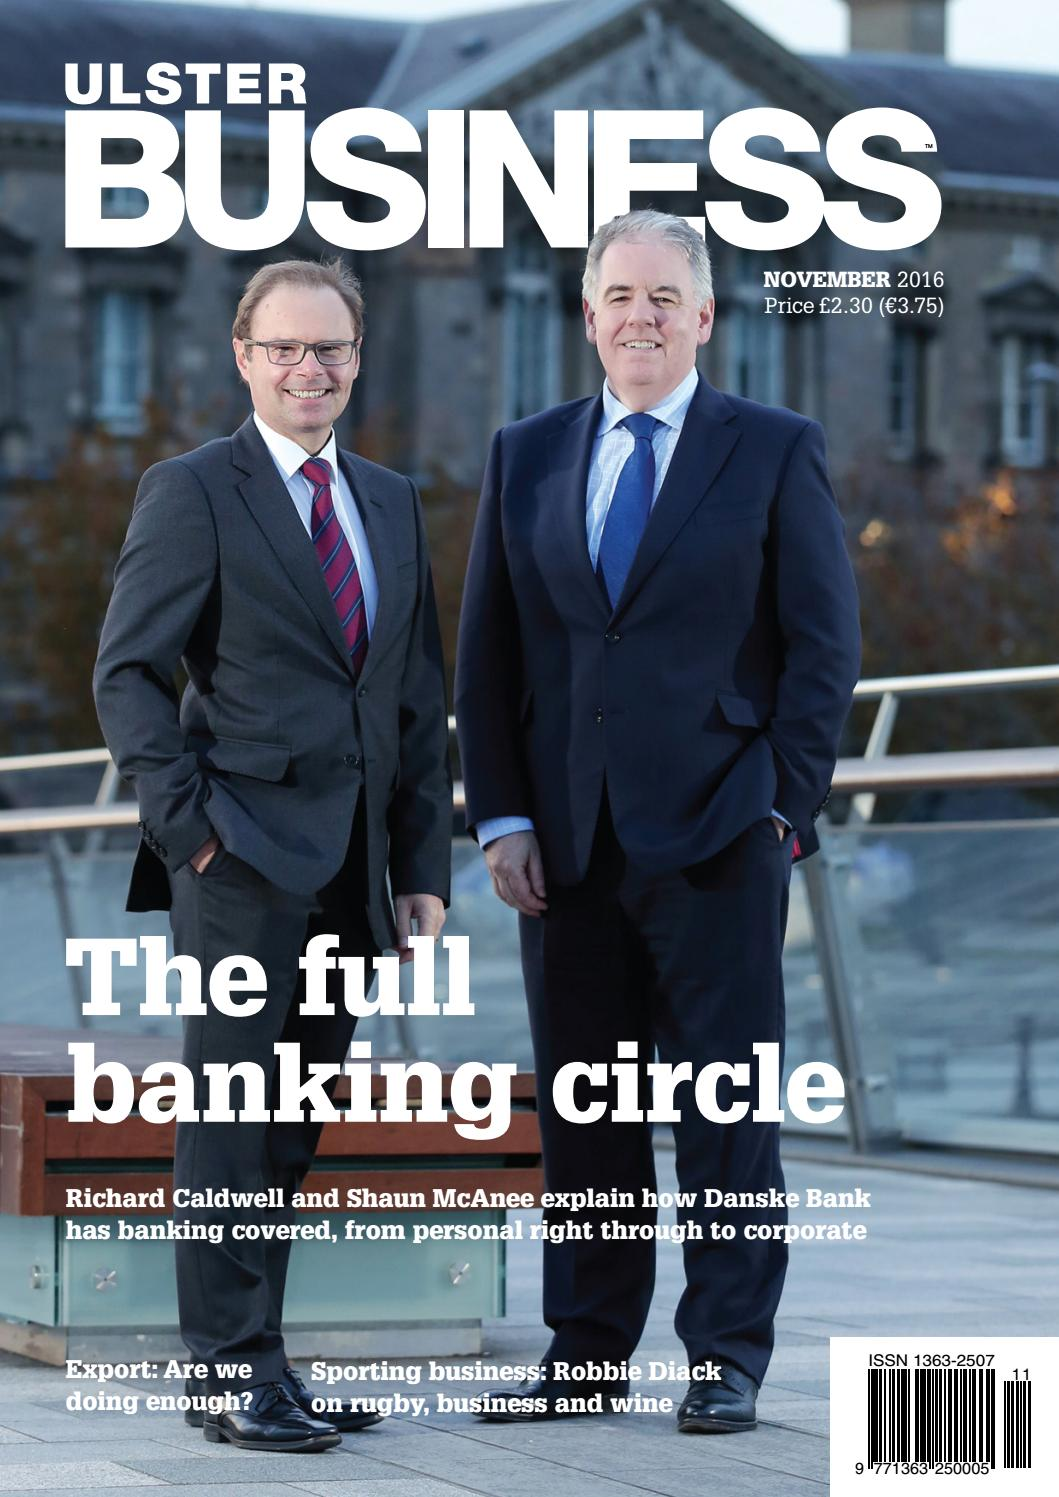 be3aa4090373 Ulster Business - November 2016 by Ulster Business - issuu